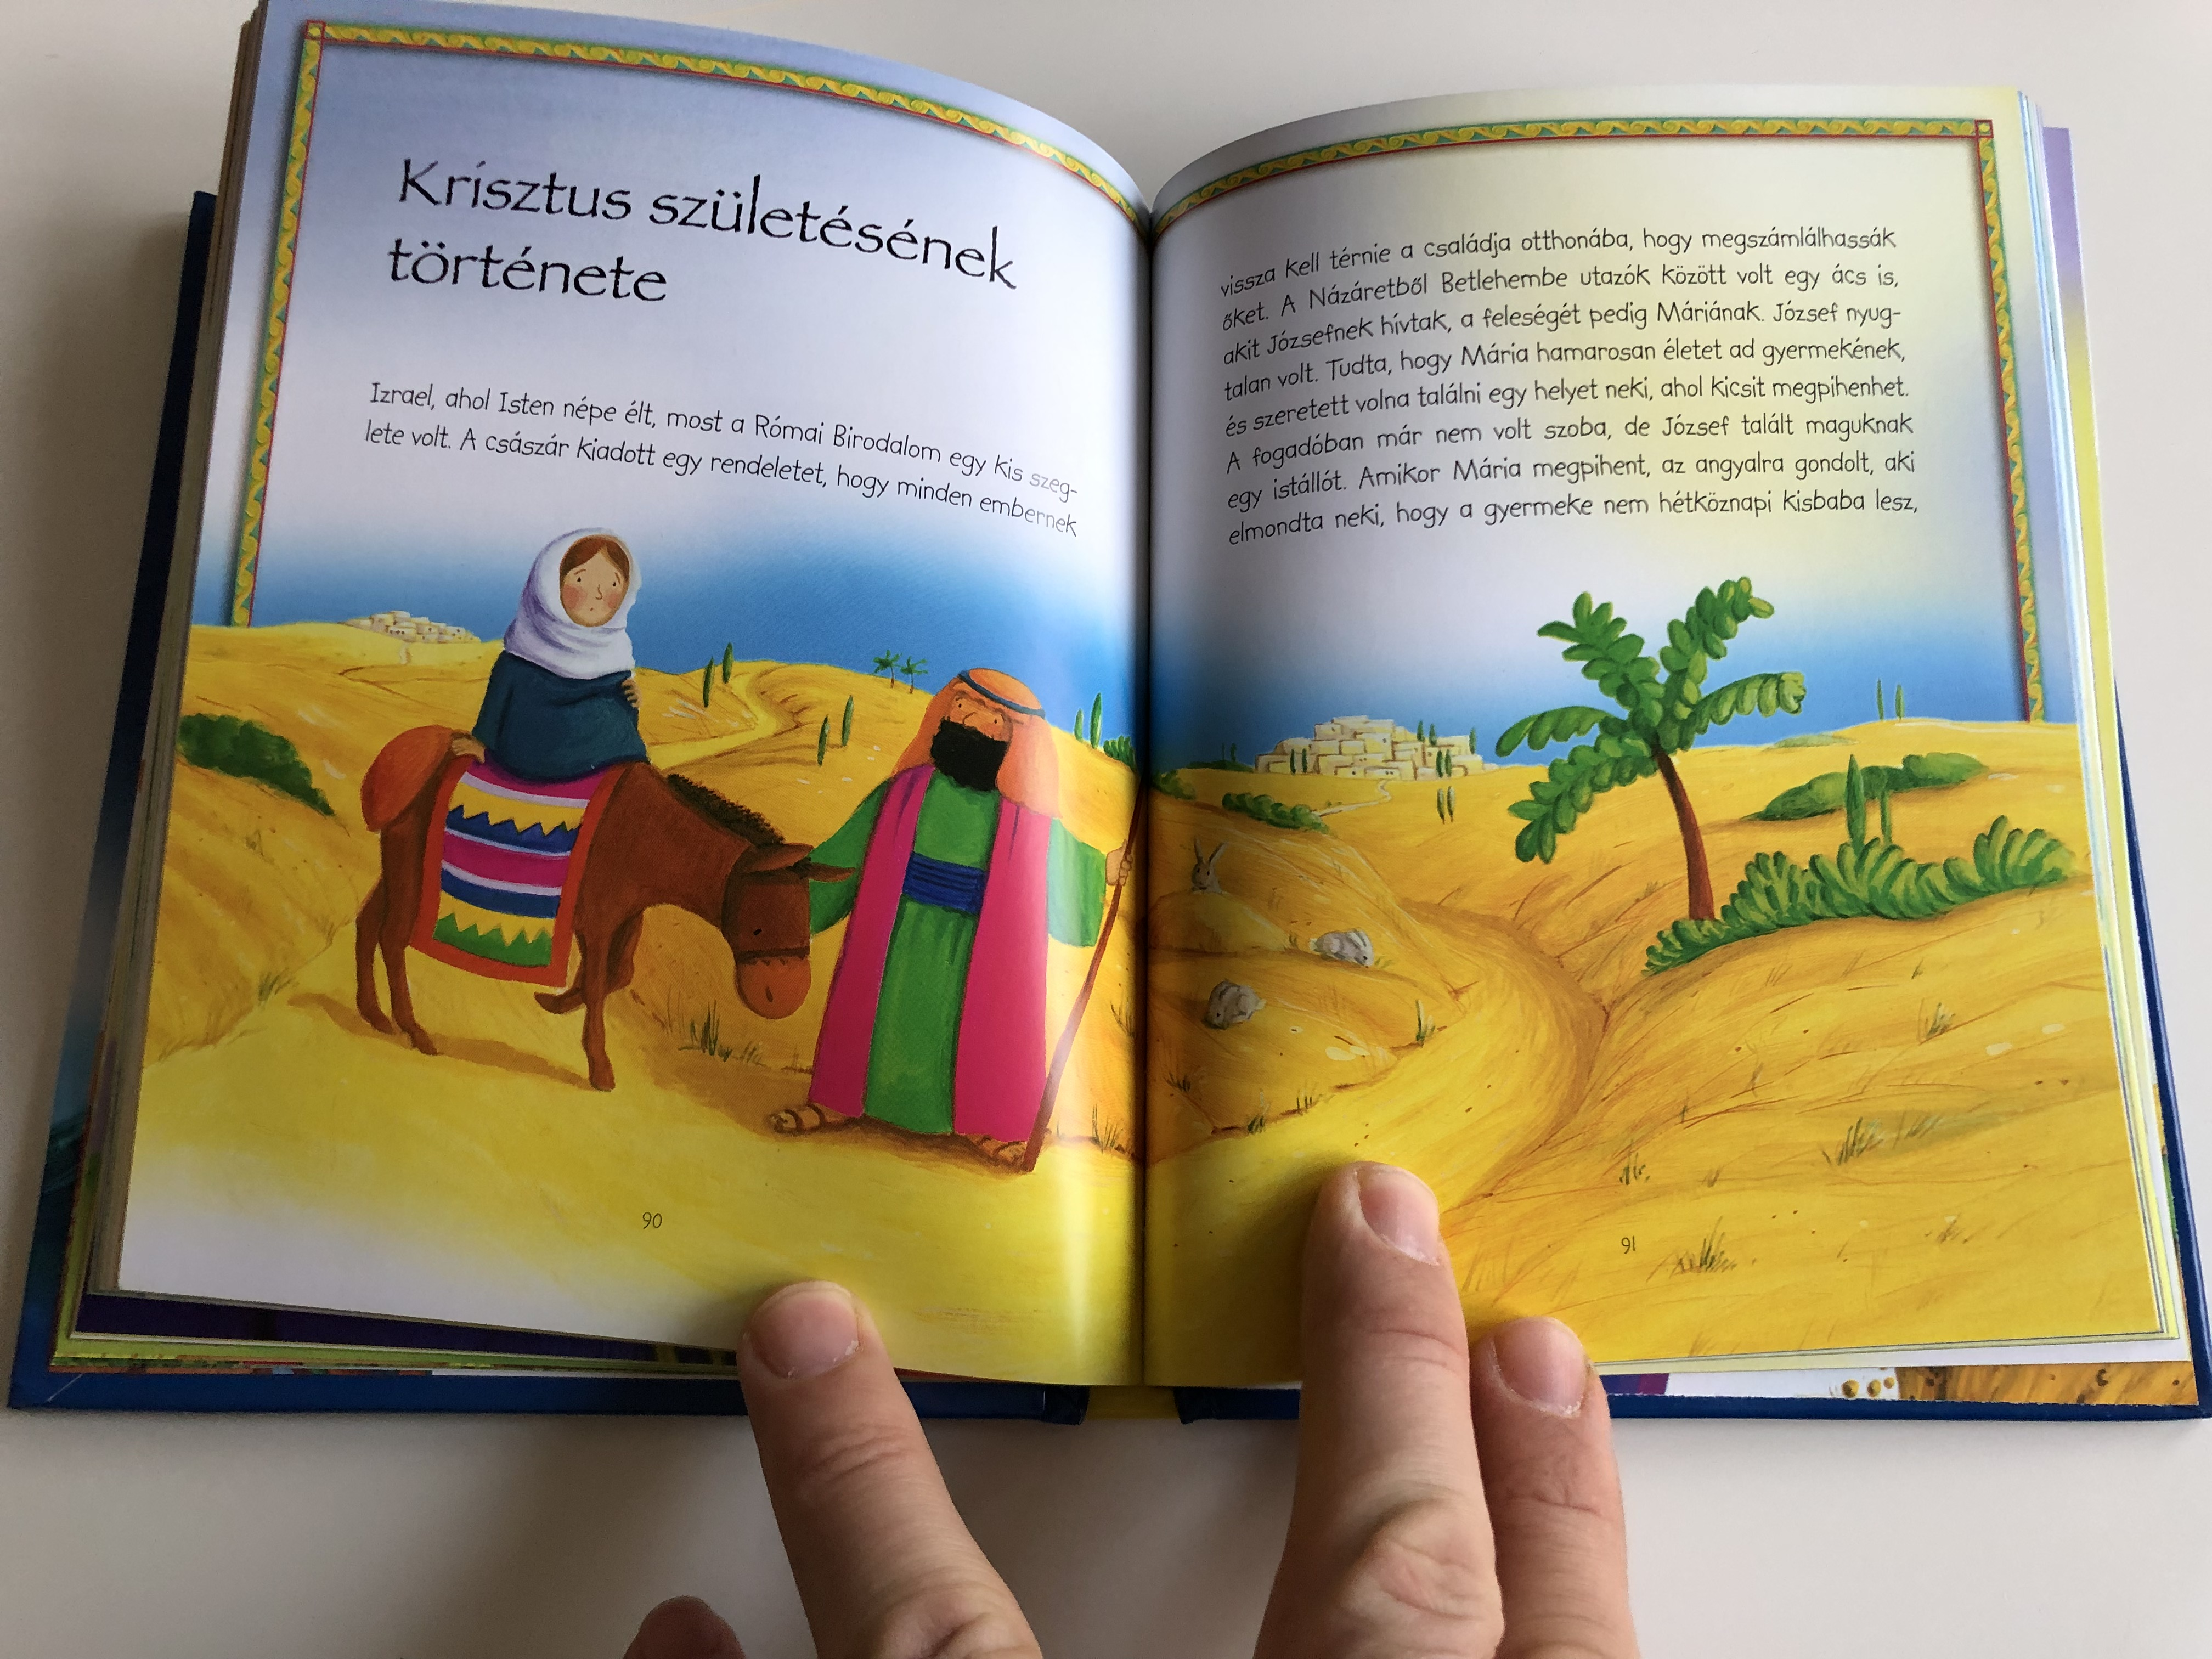 biblia-kicsiknek-by-bethan-james-and-estelle-corke-hungarian-translation-of-my-bible-story-book-hardcover-2013-napraforg-kiad-9-.jpg